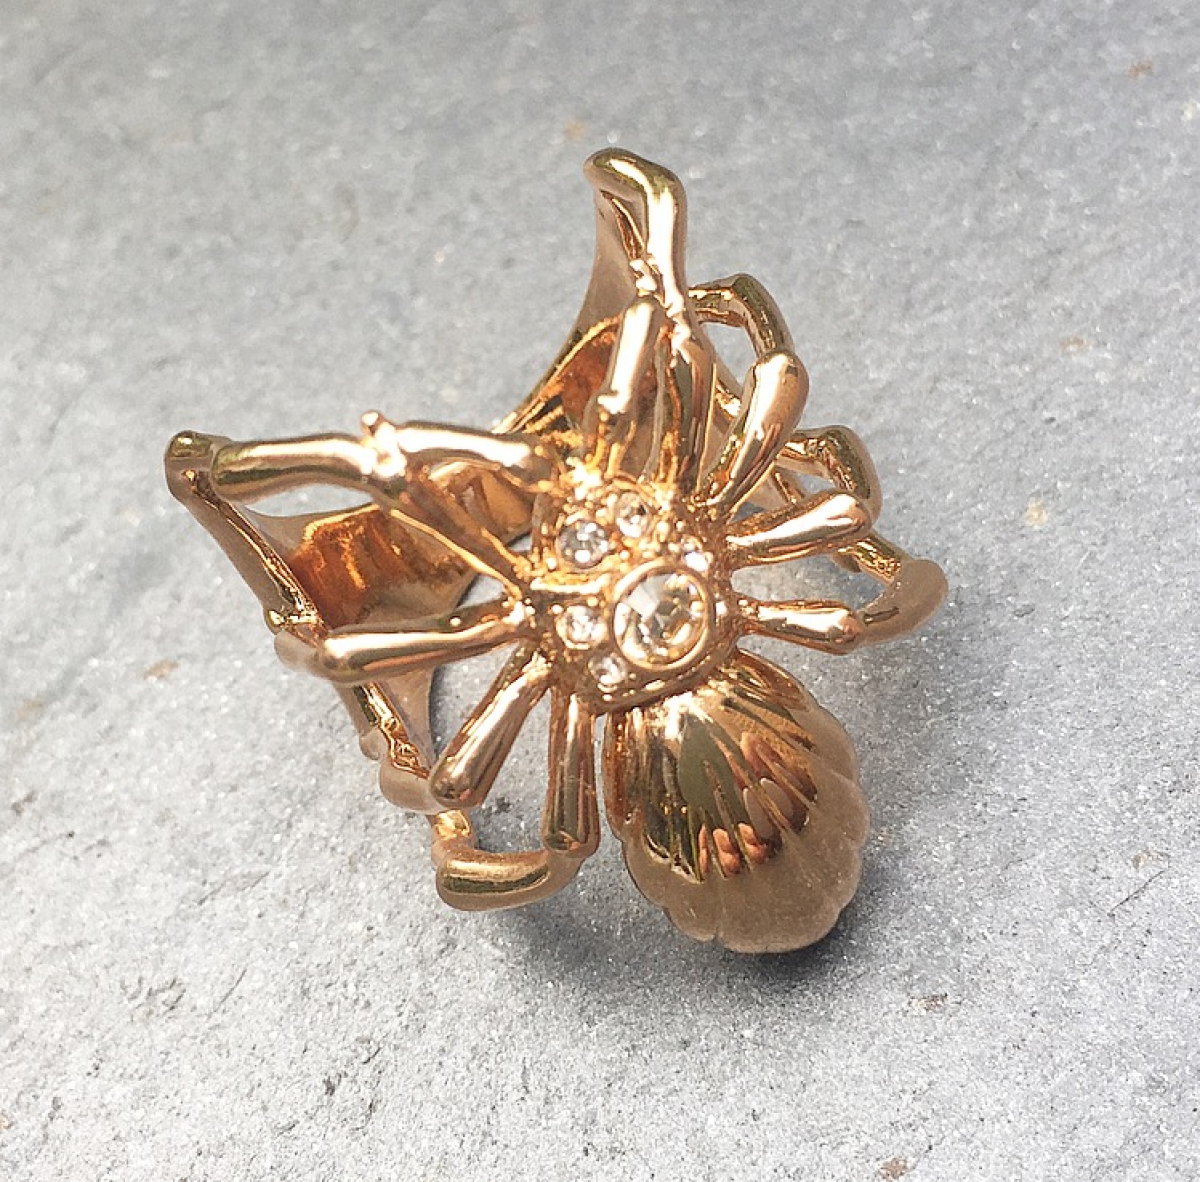 Archive Spider Ring Rose Gold - Small Size Only